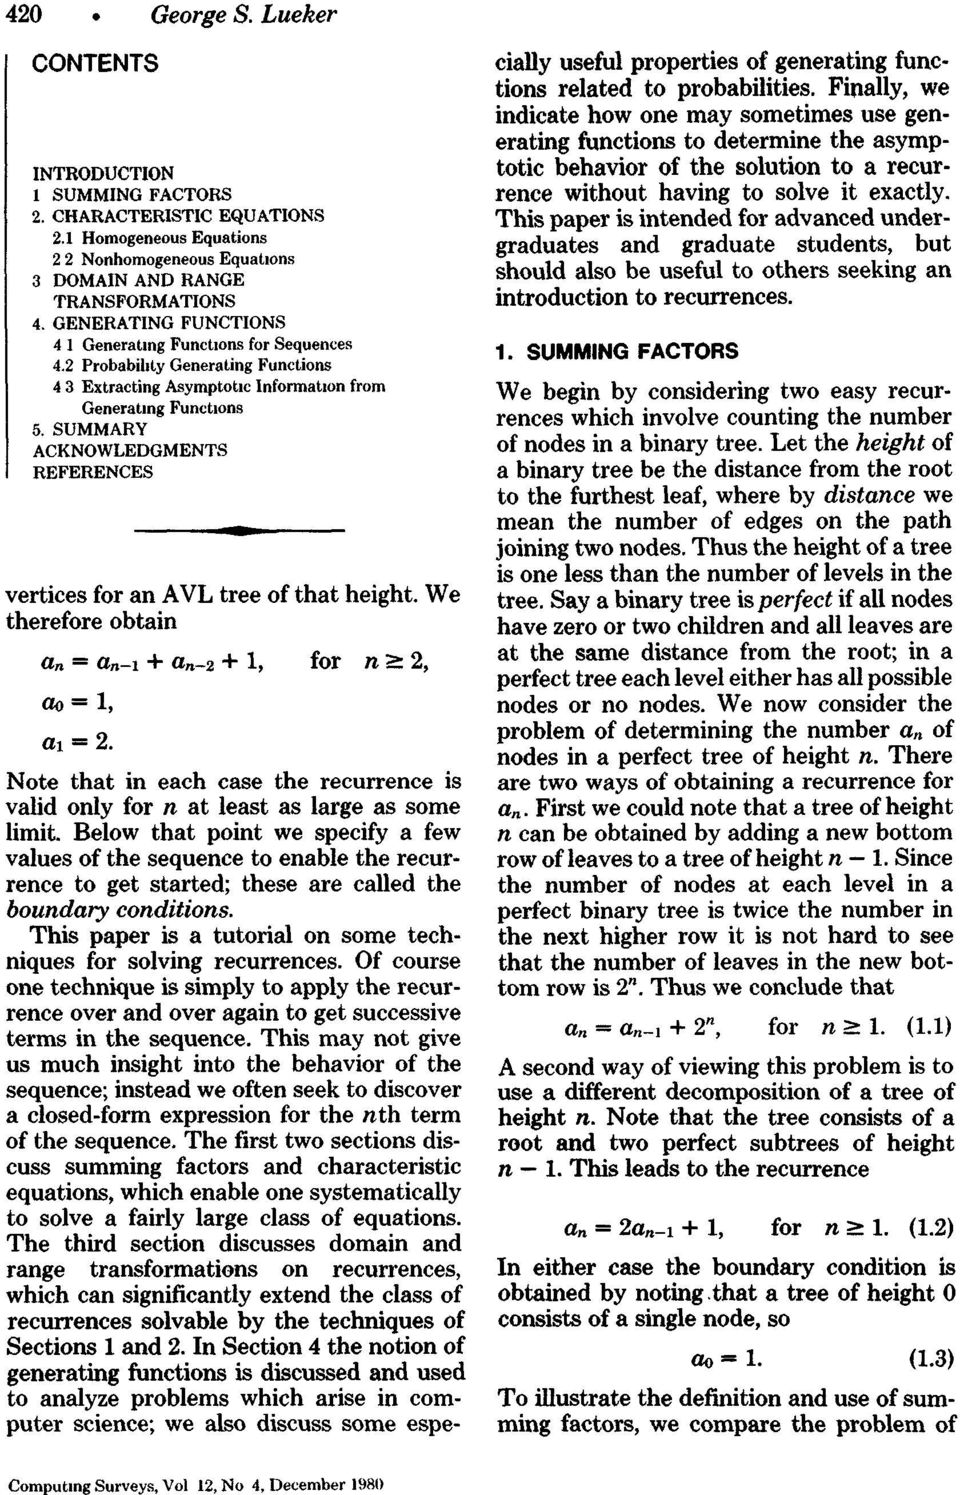 SUMMARY ACKNOWLEDGMENTS REFERENCES vertices for an AVL tree of that height. We therefore obtain an ffi an-1 + an-2 + 1, for n ~_ 2, a0-- 1, axffi2.